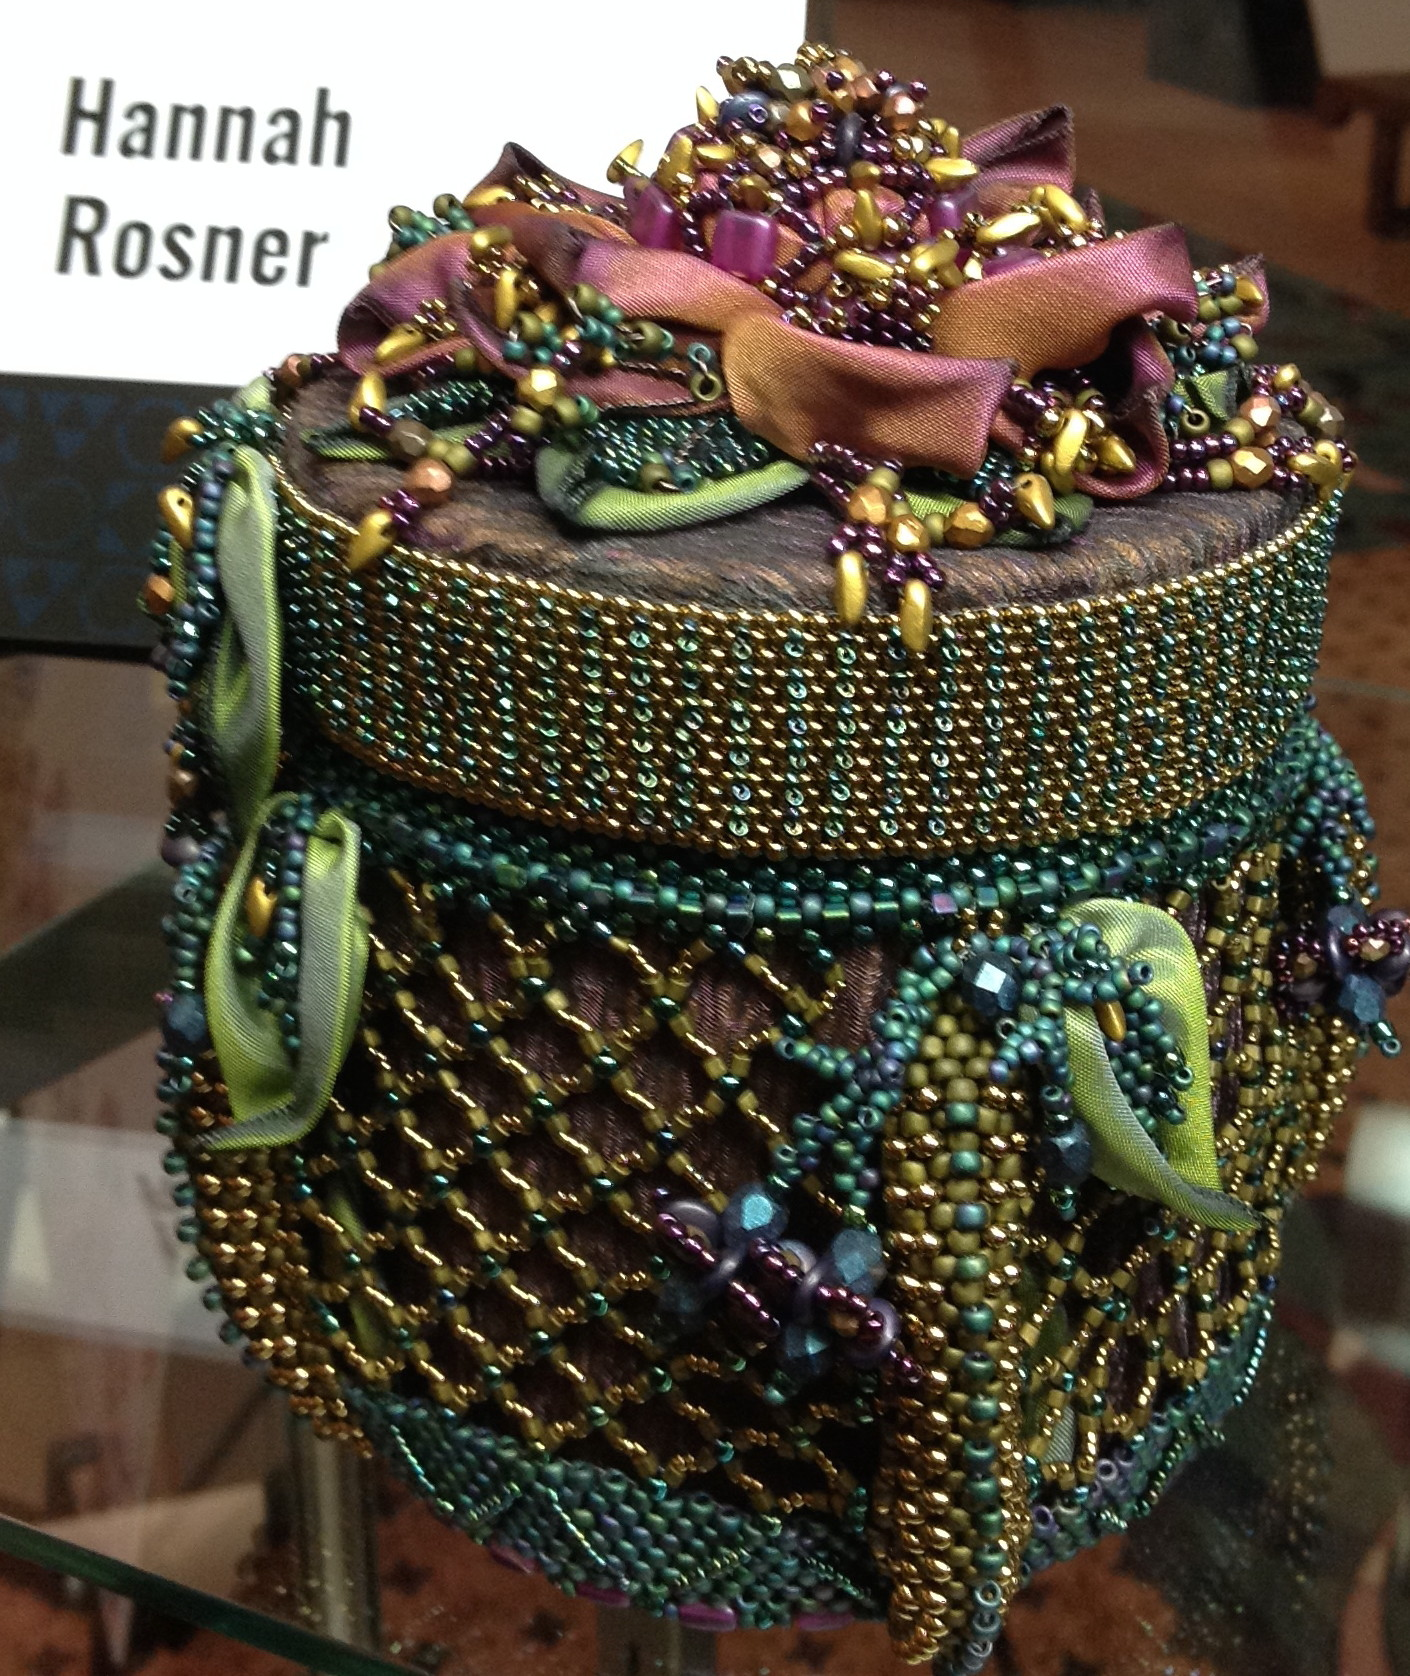 A very nice beaded container by Hannah Rosner.